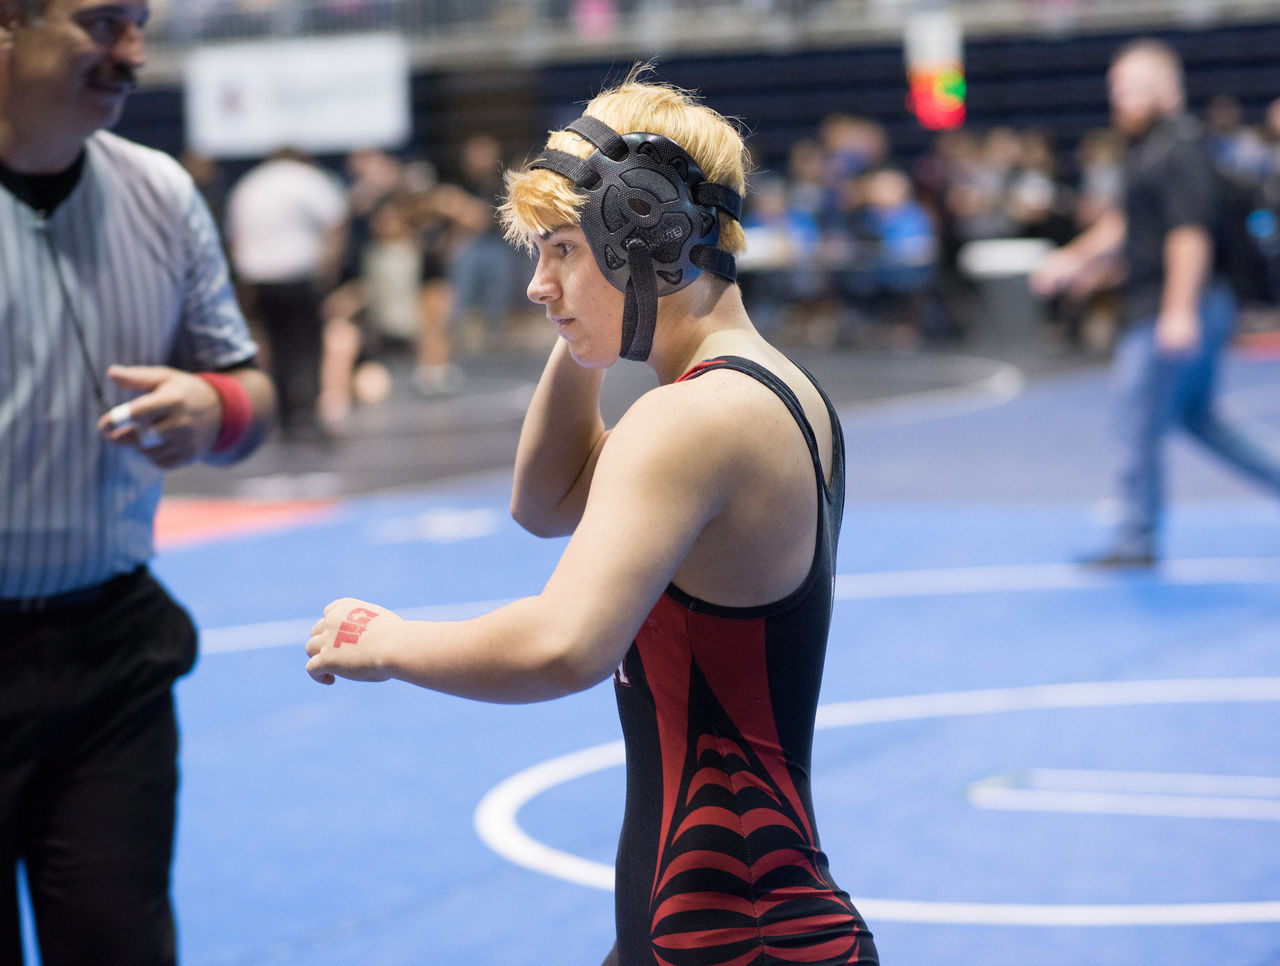 Cropped 2017 02 24t205821z 789506143 rc190dc03380 rtrmadp 3 texas lgbt wrestler